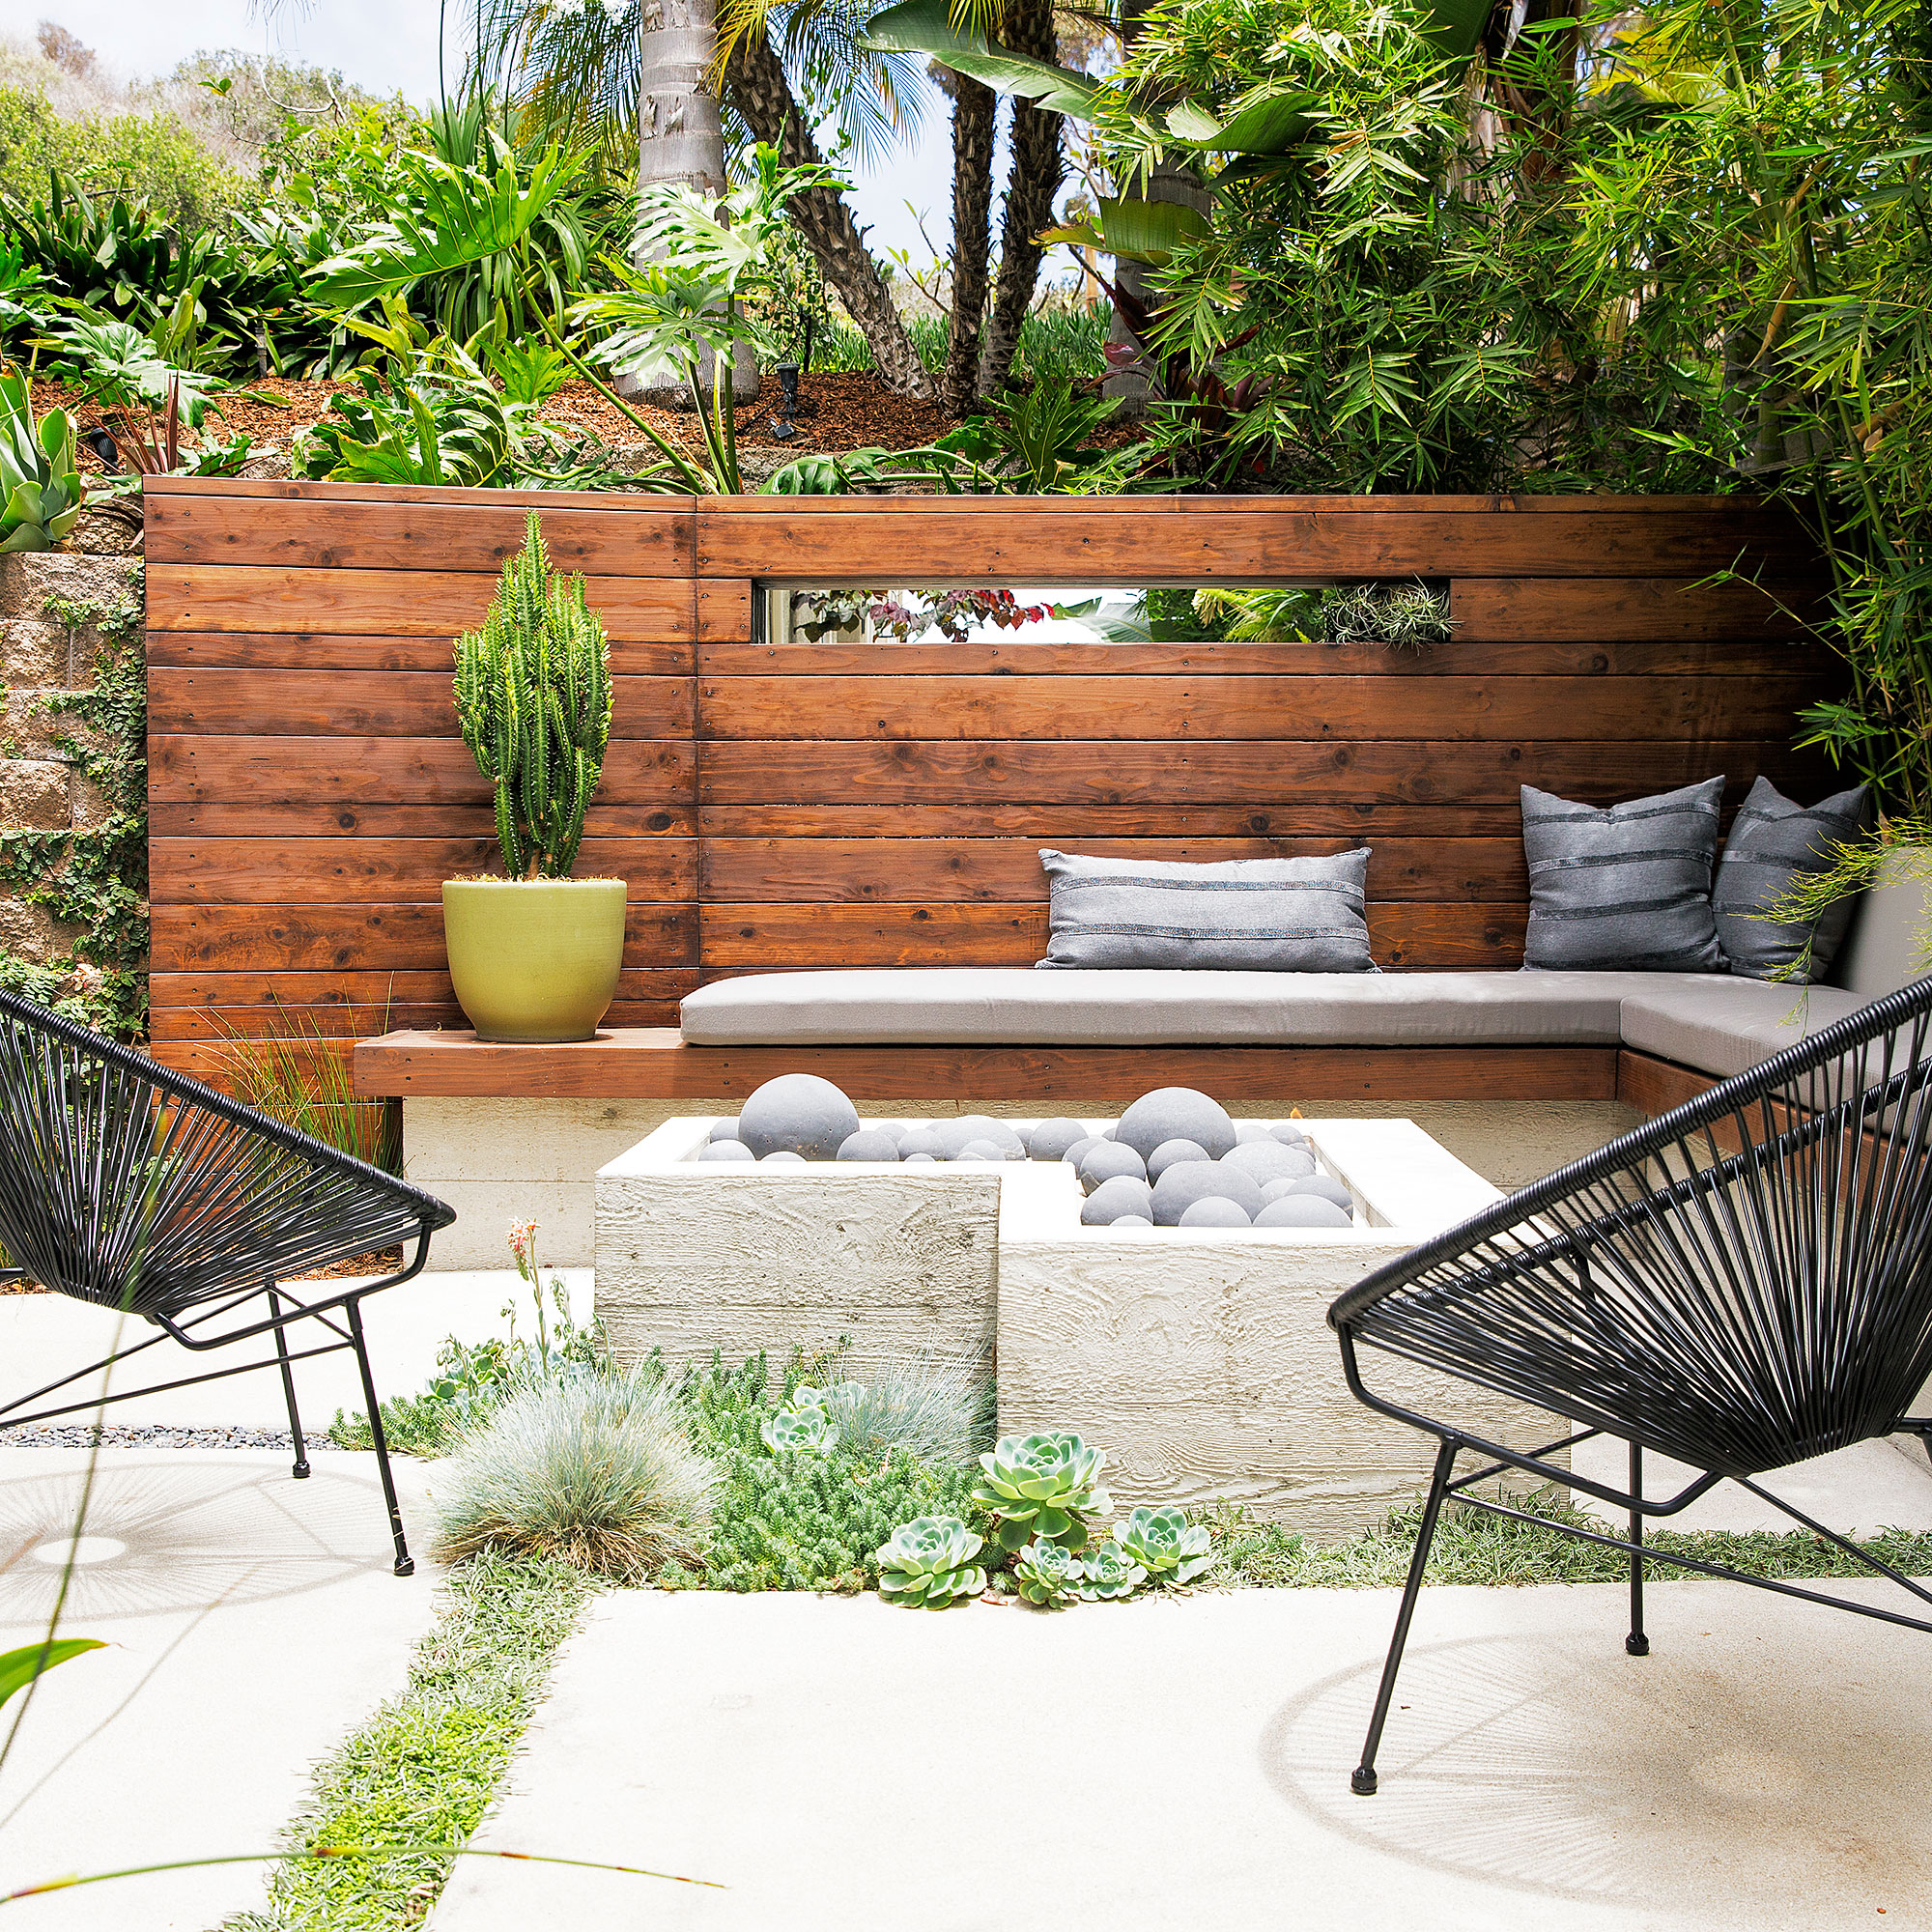 retaining wall ideas - sunset magazine